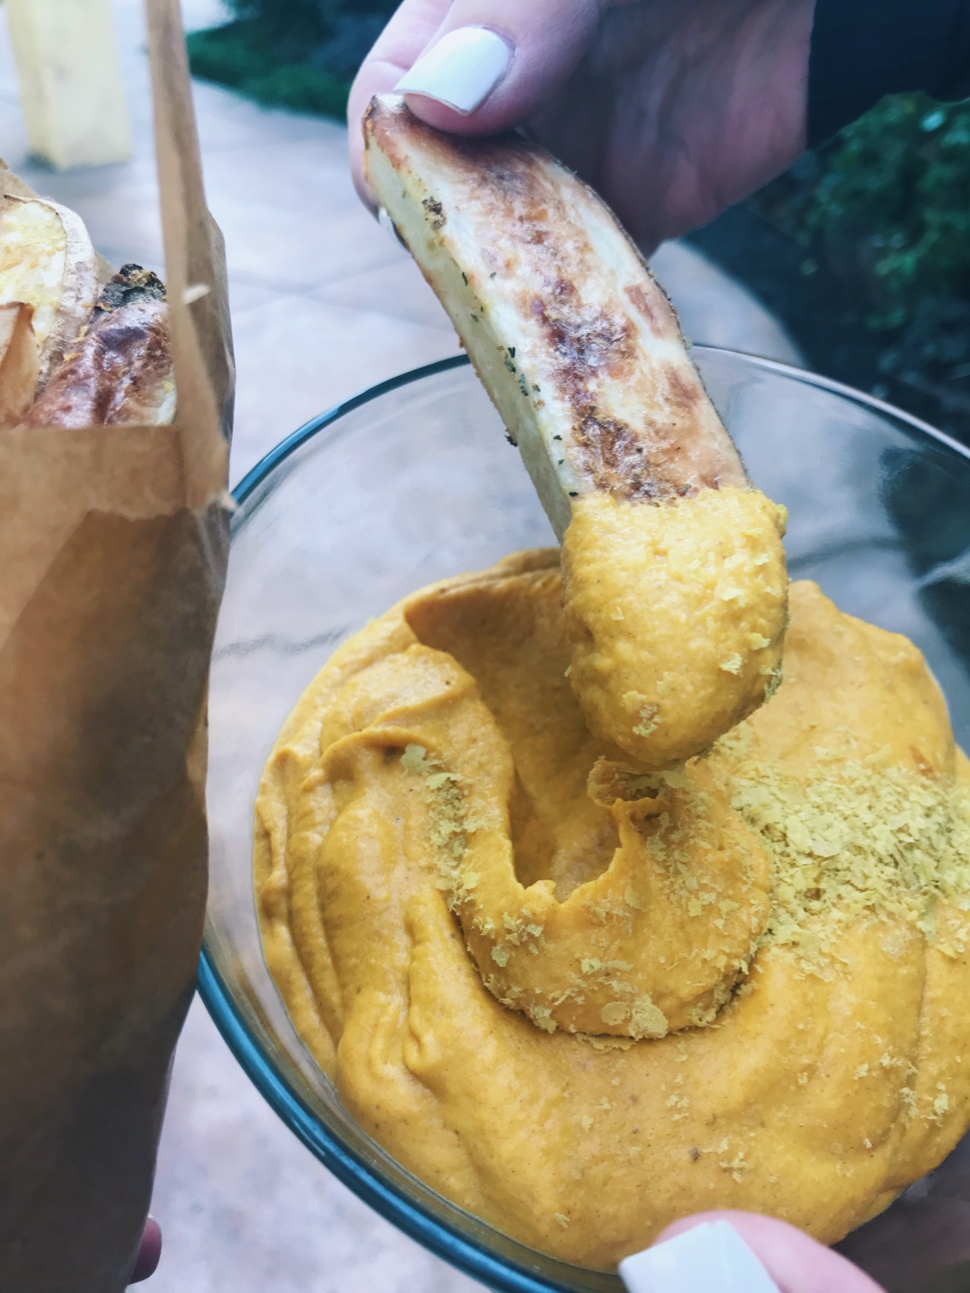 Salt Oil Sugar Free Baked French Fries Plant Based Nacho Cheese Dip The Balanced Blonde